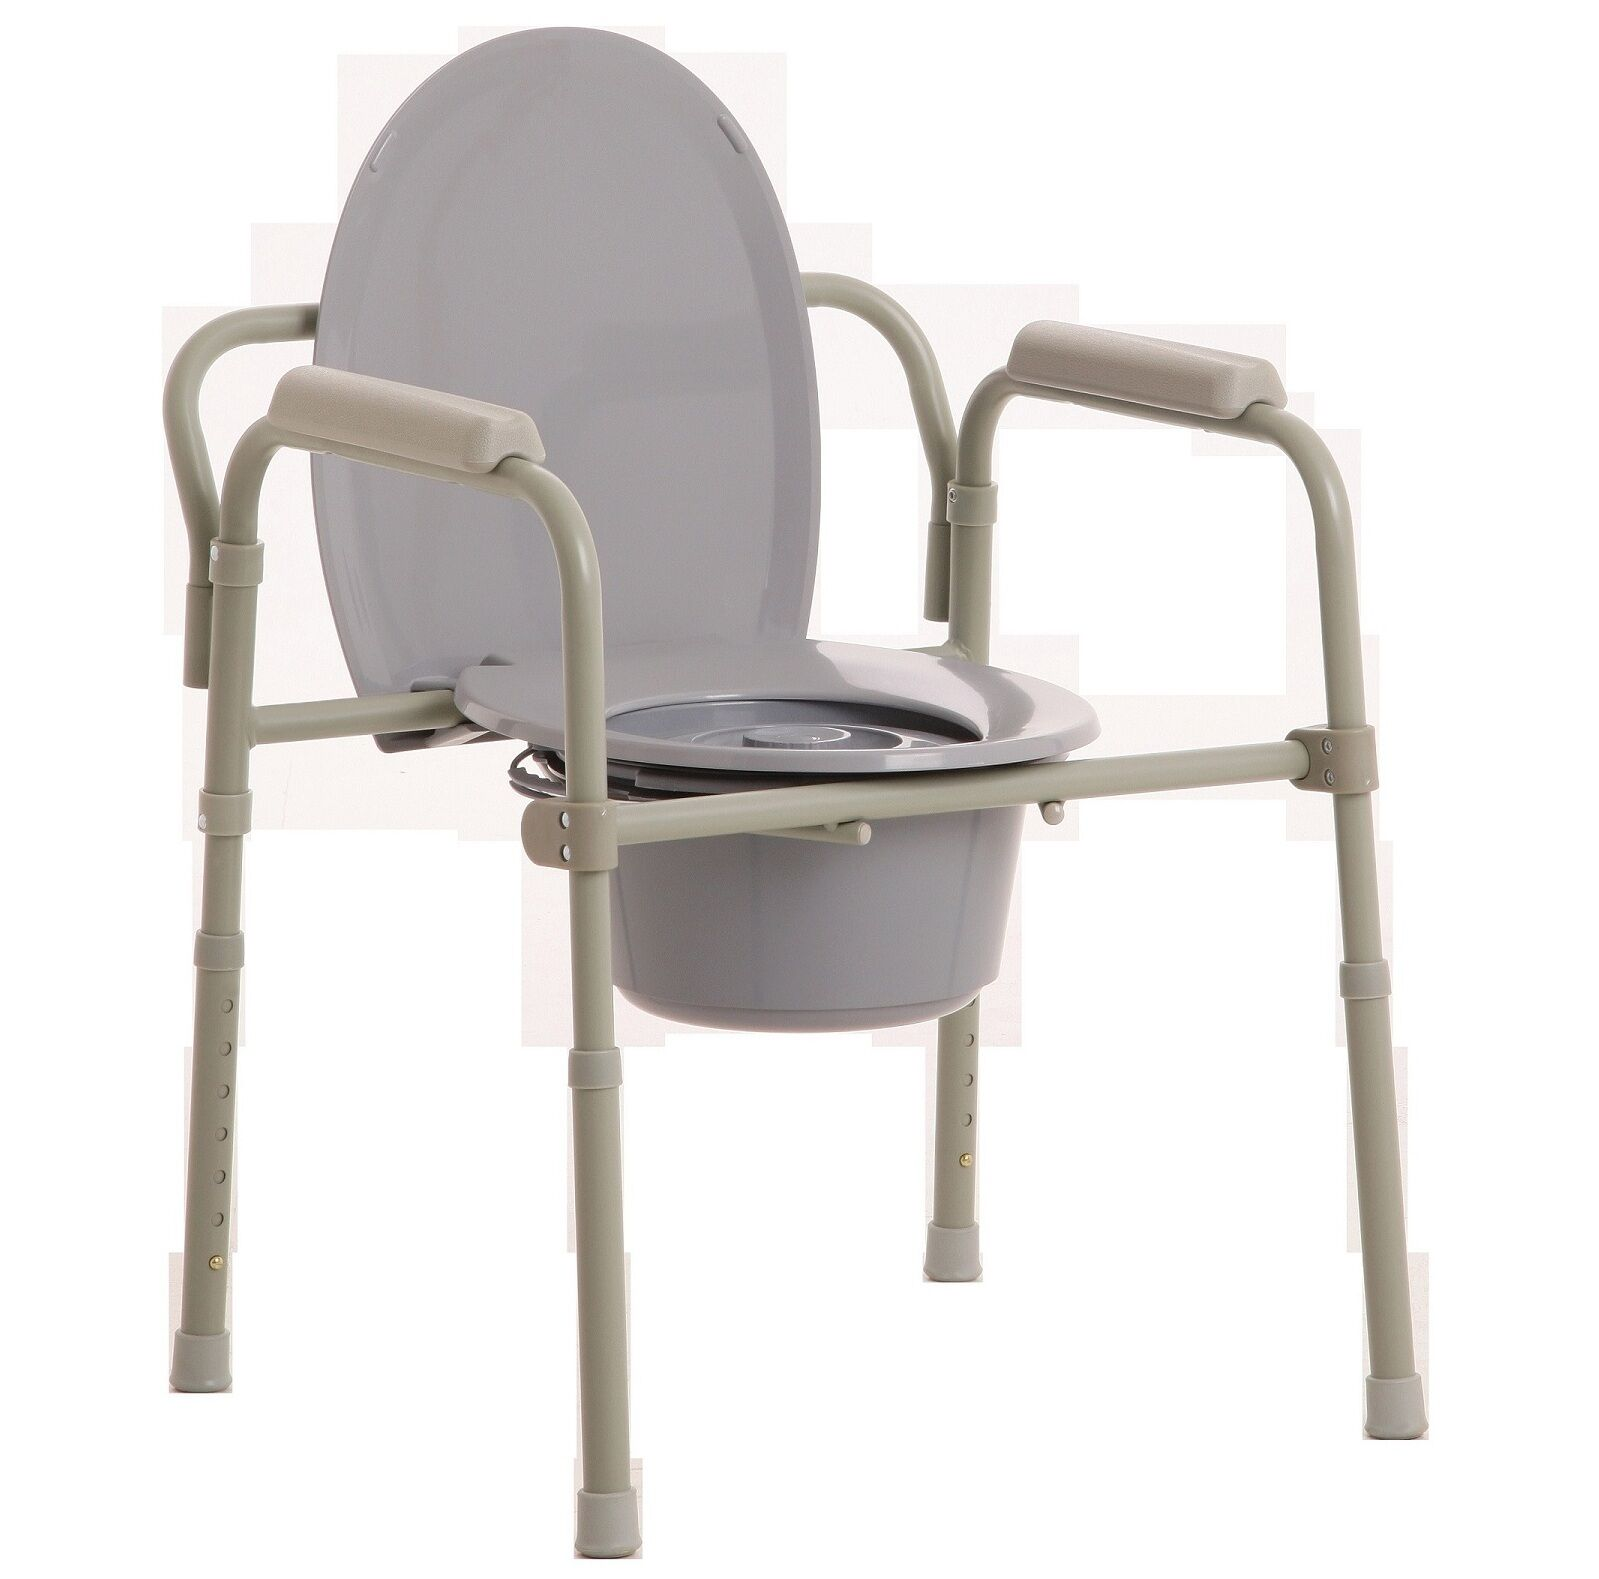 MLE OVER TOILET AID WITH CARE MODE CHAIR ADJUSTABLE HEIGHT